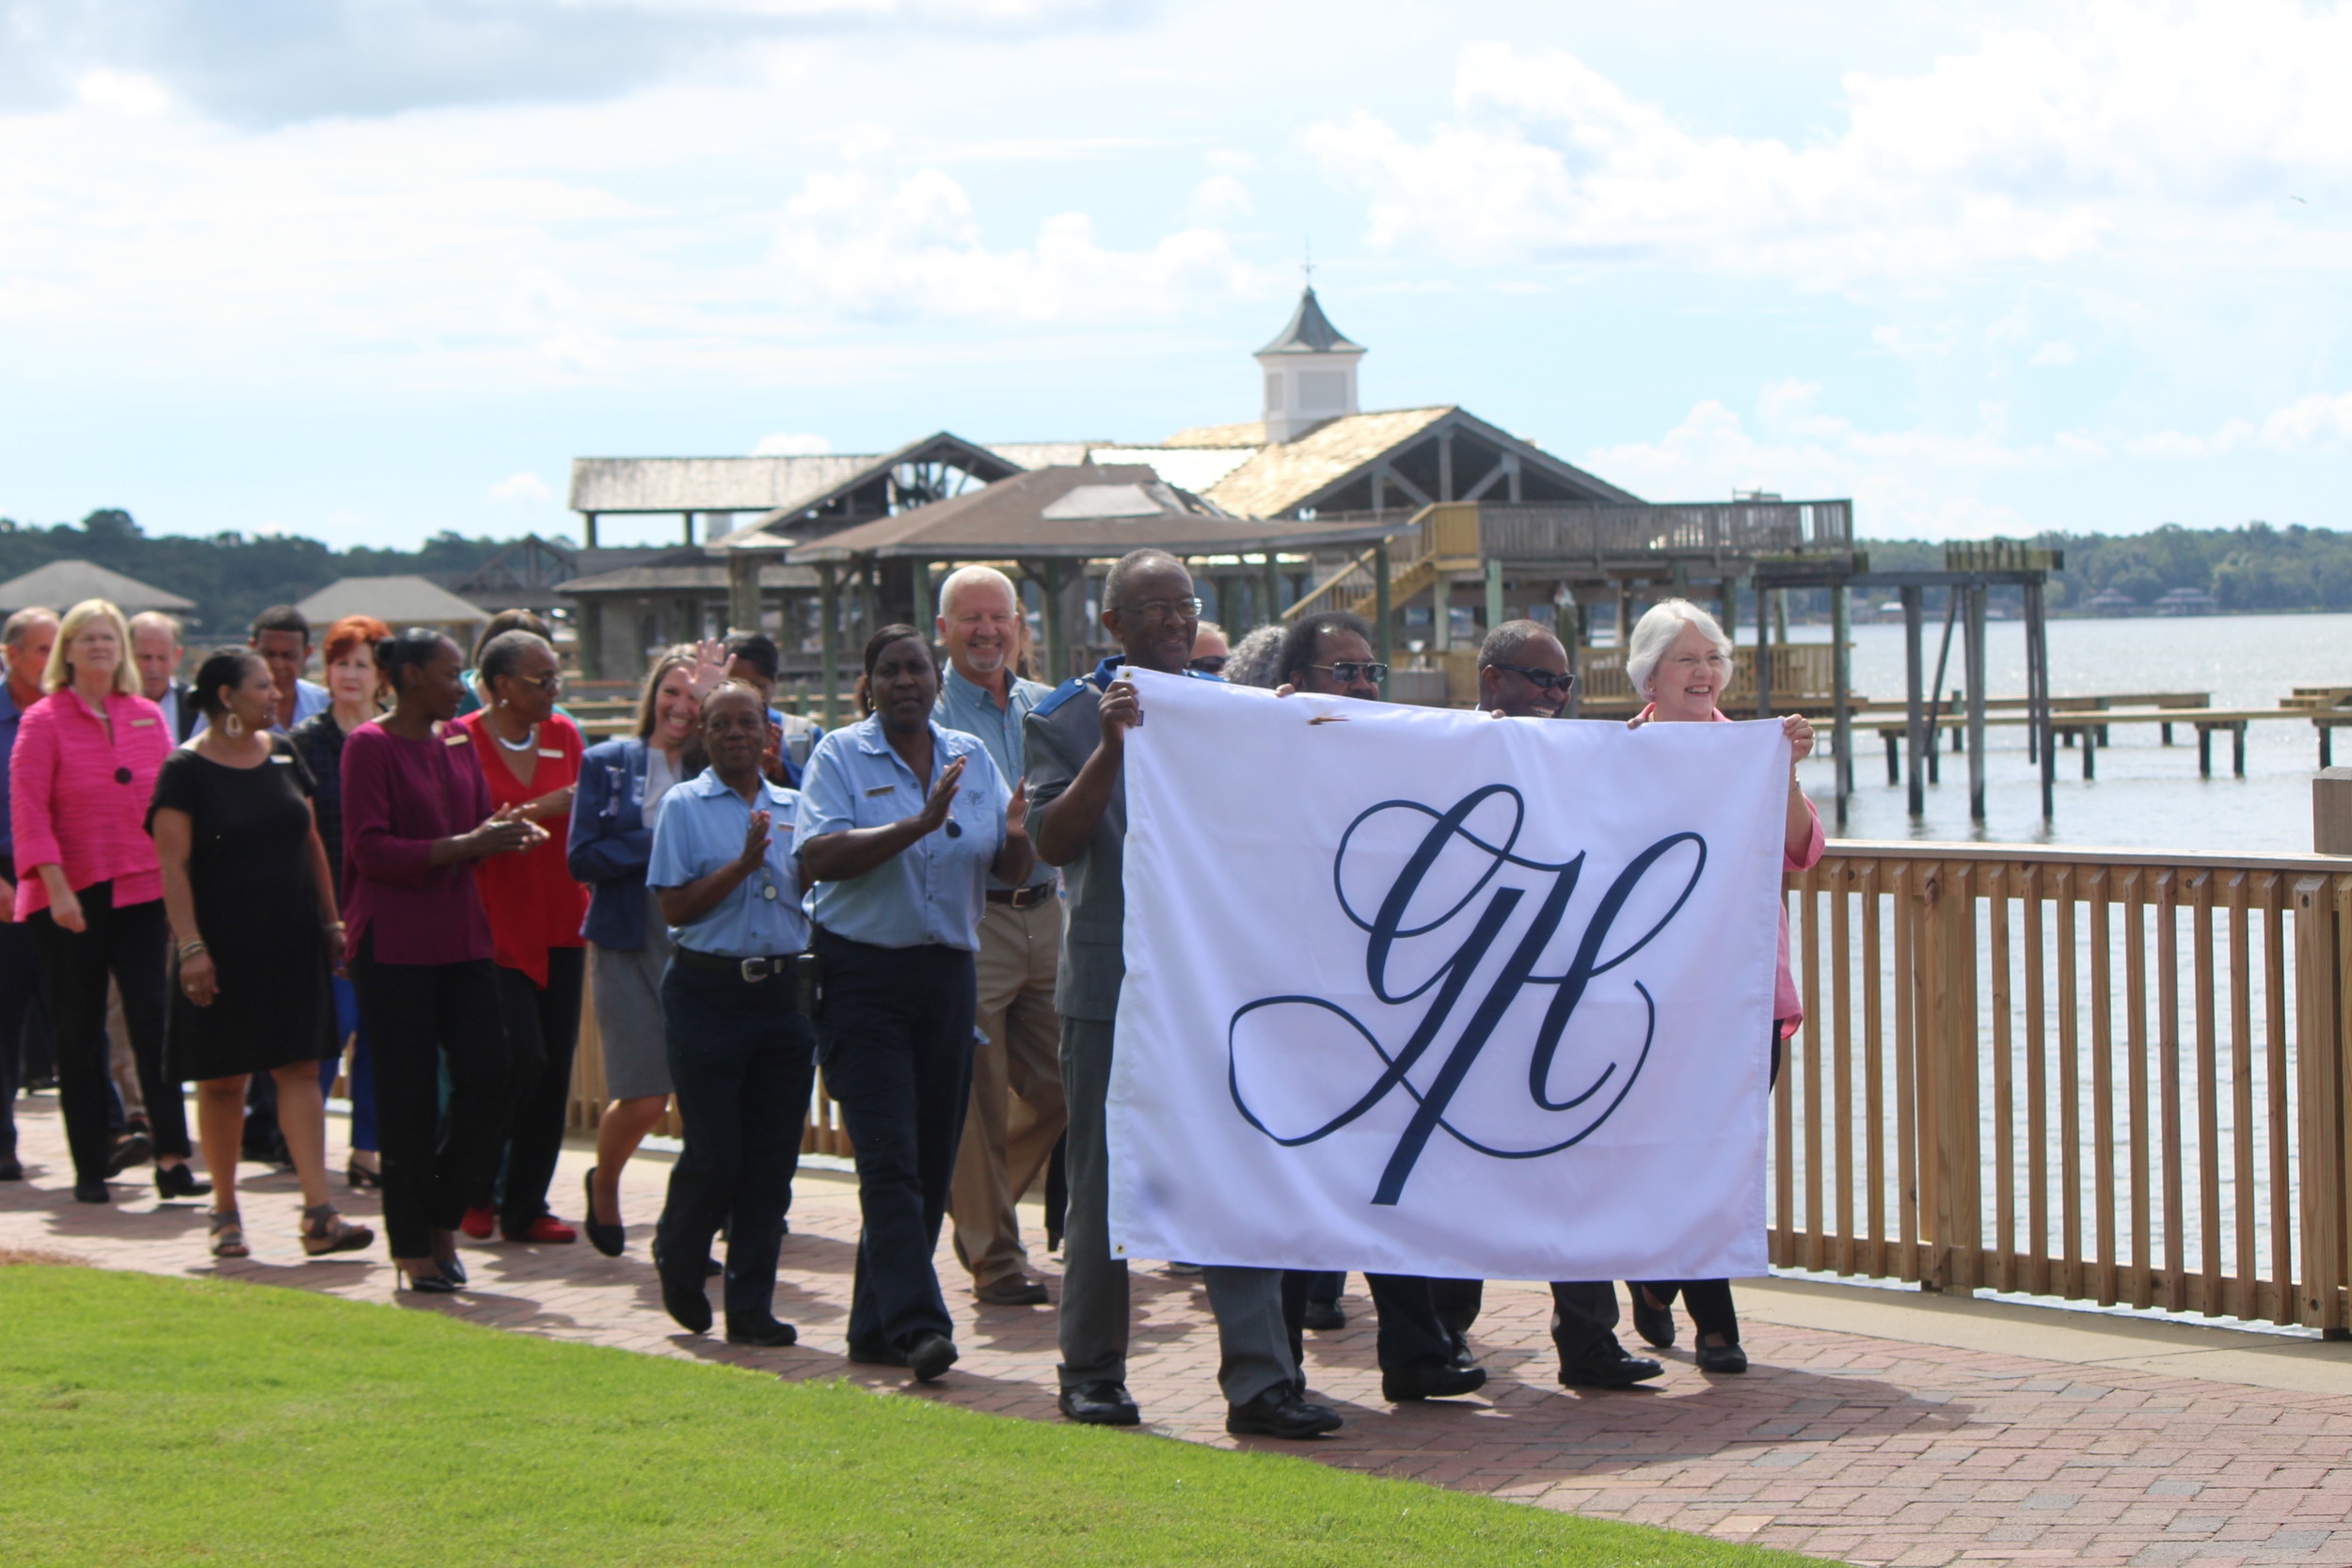 Legacy staff members of the Grand Hotel in Point Clear carry the new flag to be raised on site as a symbol of the hotel's completed renovations and new status as a Marriott Autograph Collection destination.